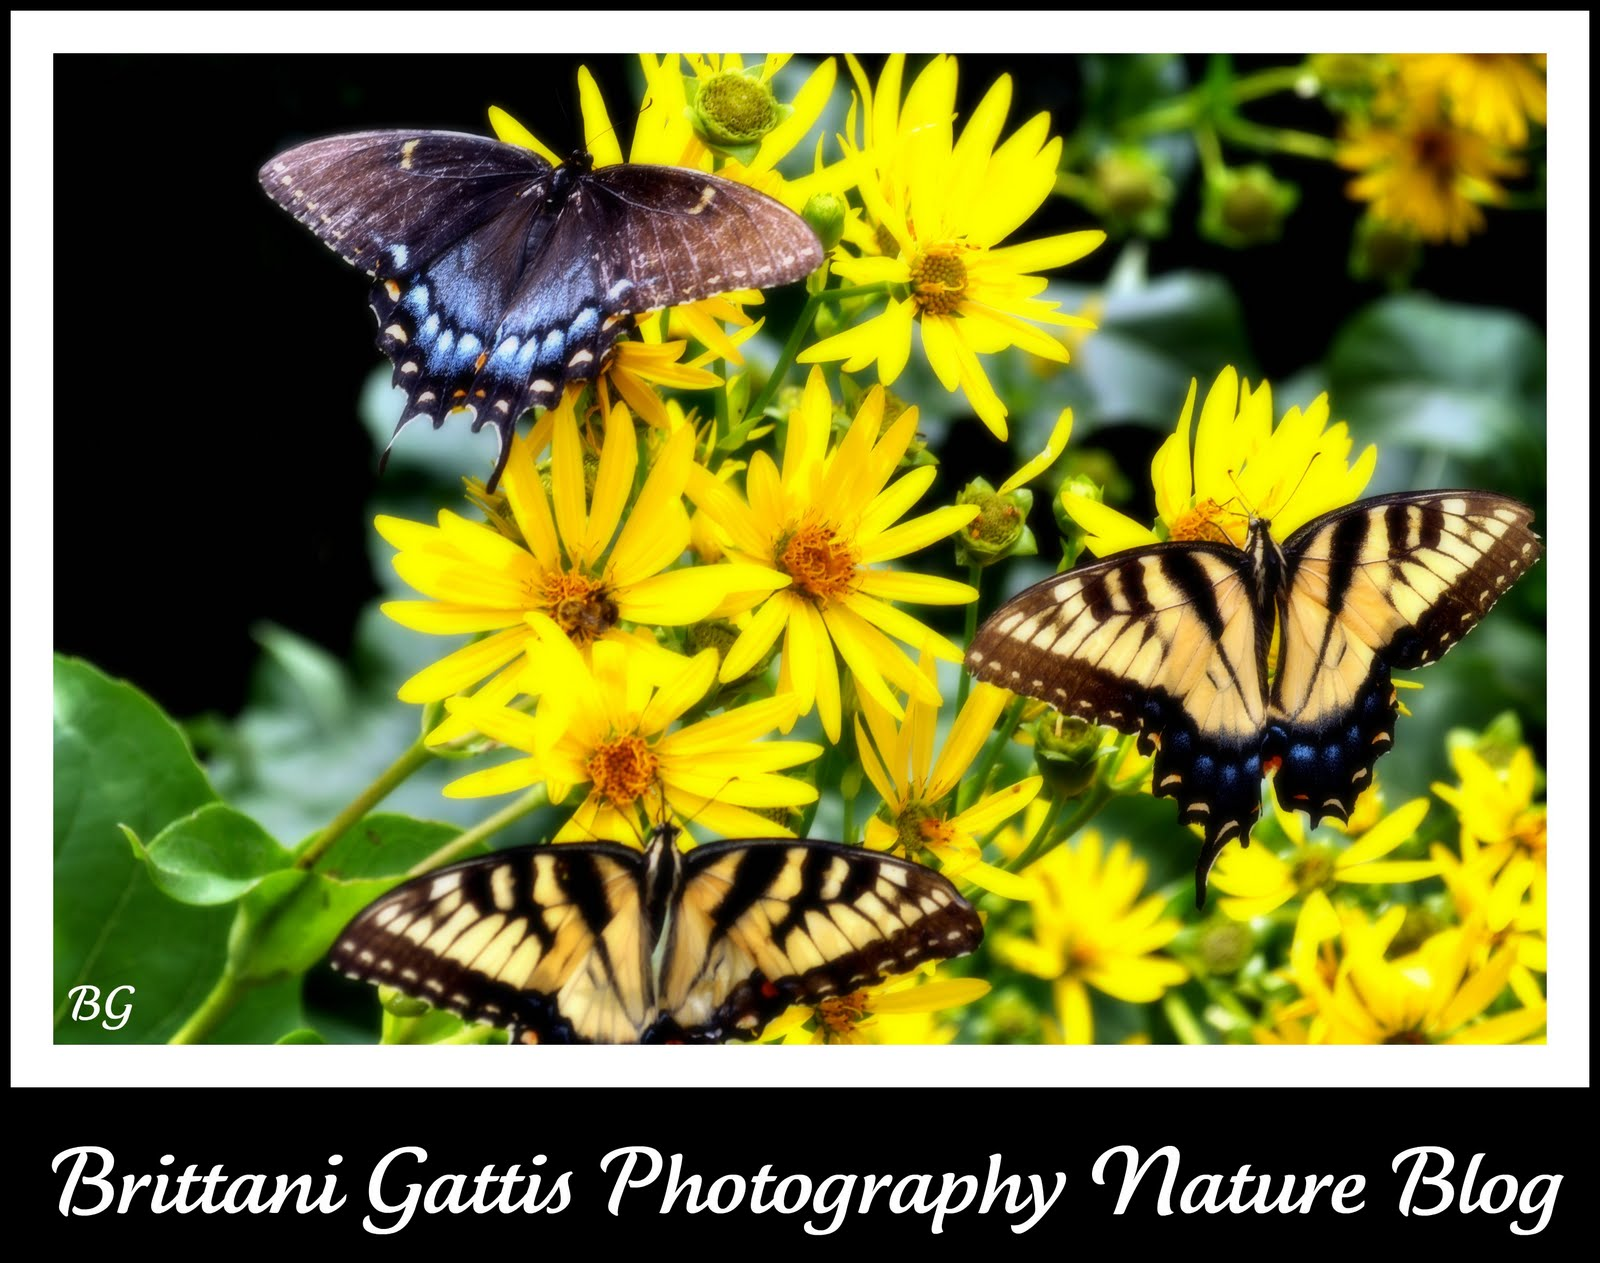 Brittani Gattis Photography Nature Blog